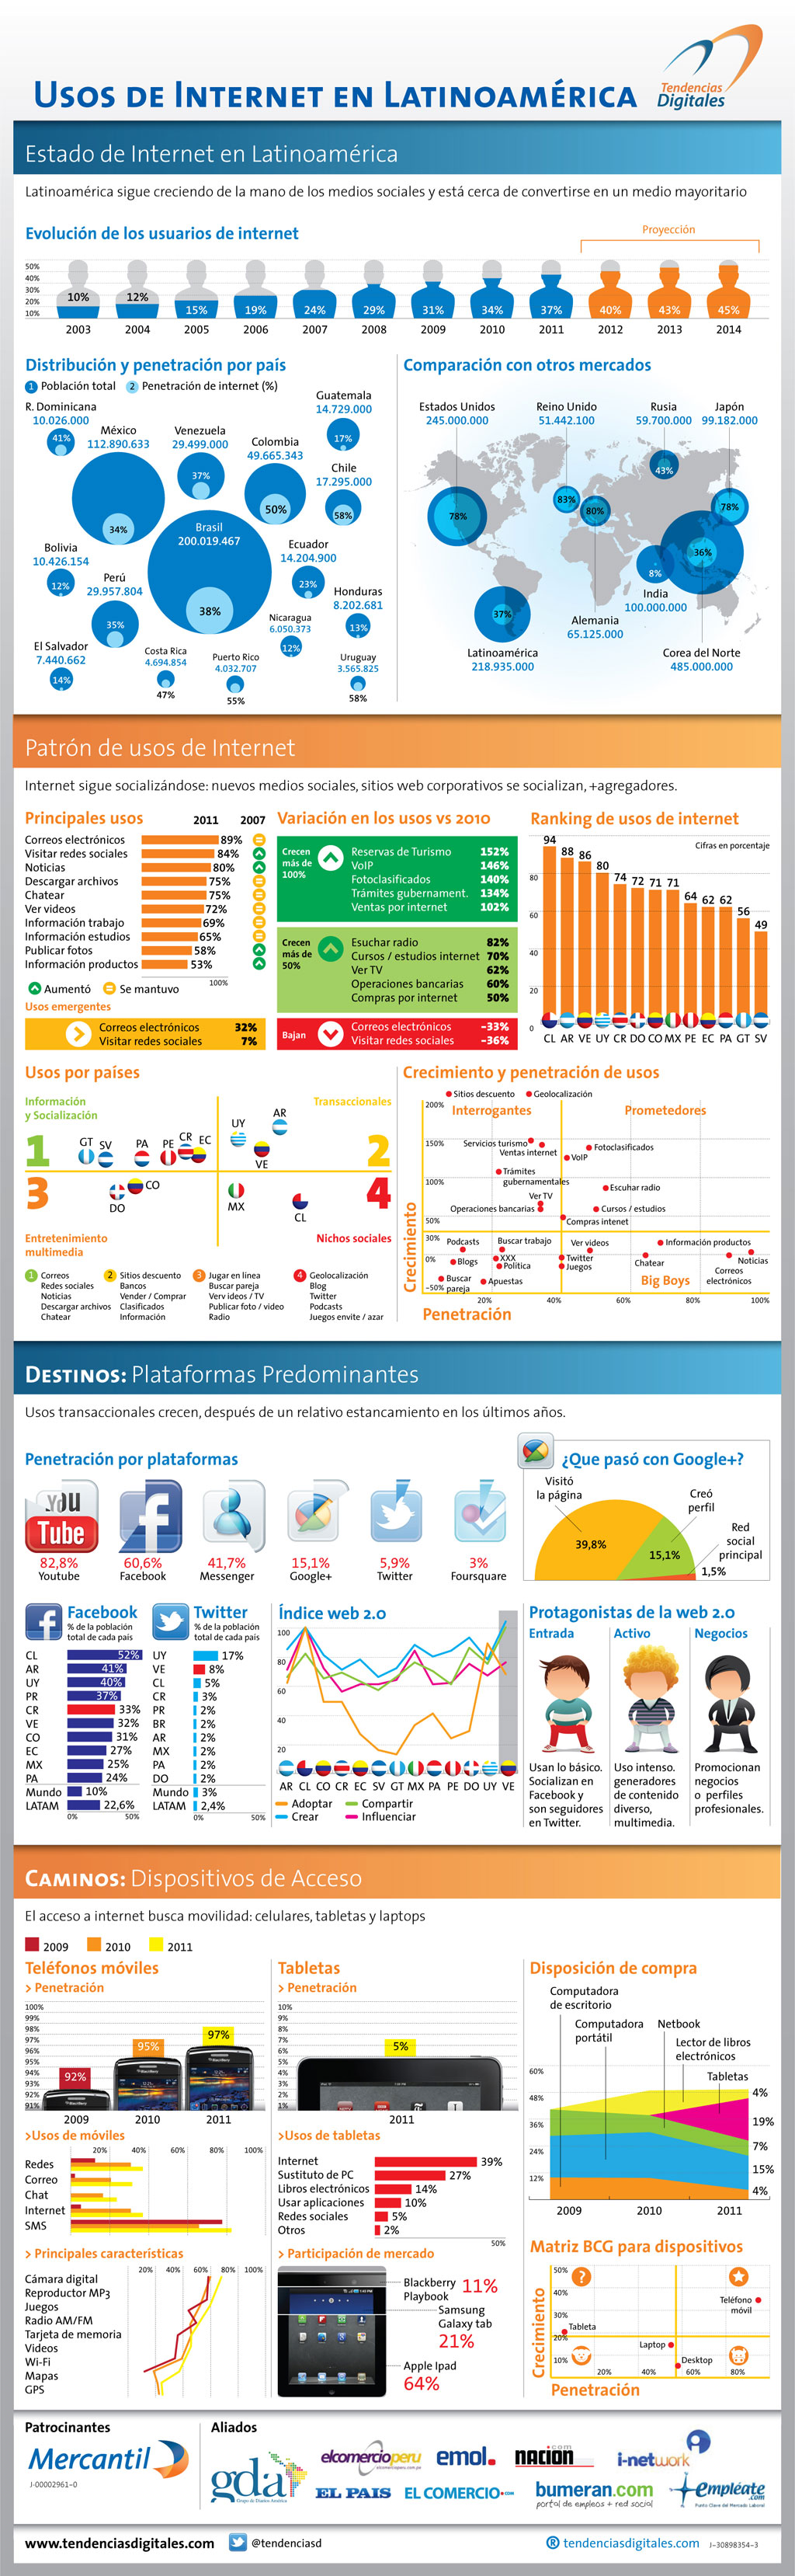 Infografía: Usos de Internet en Lationamérica (Fuente: Tendencias Digitales)